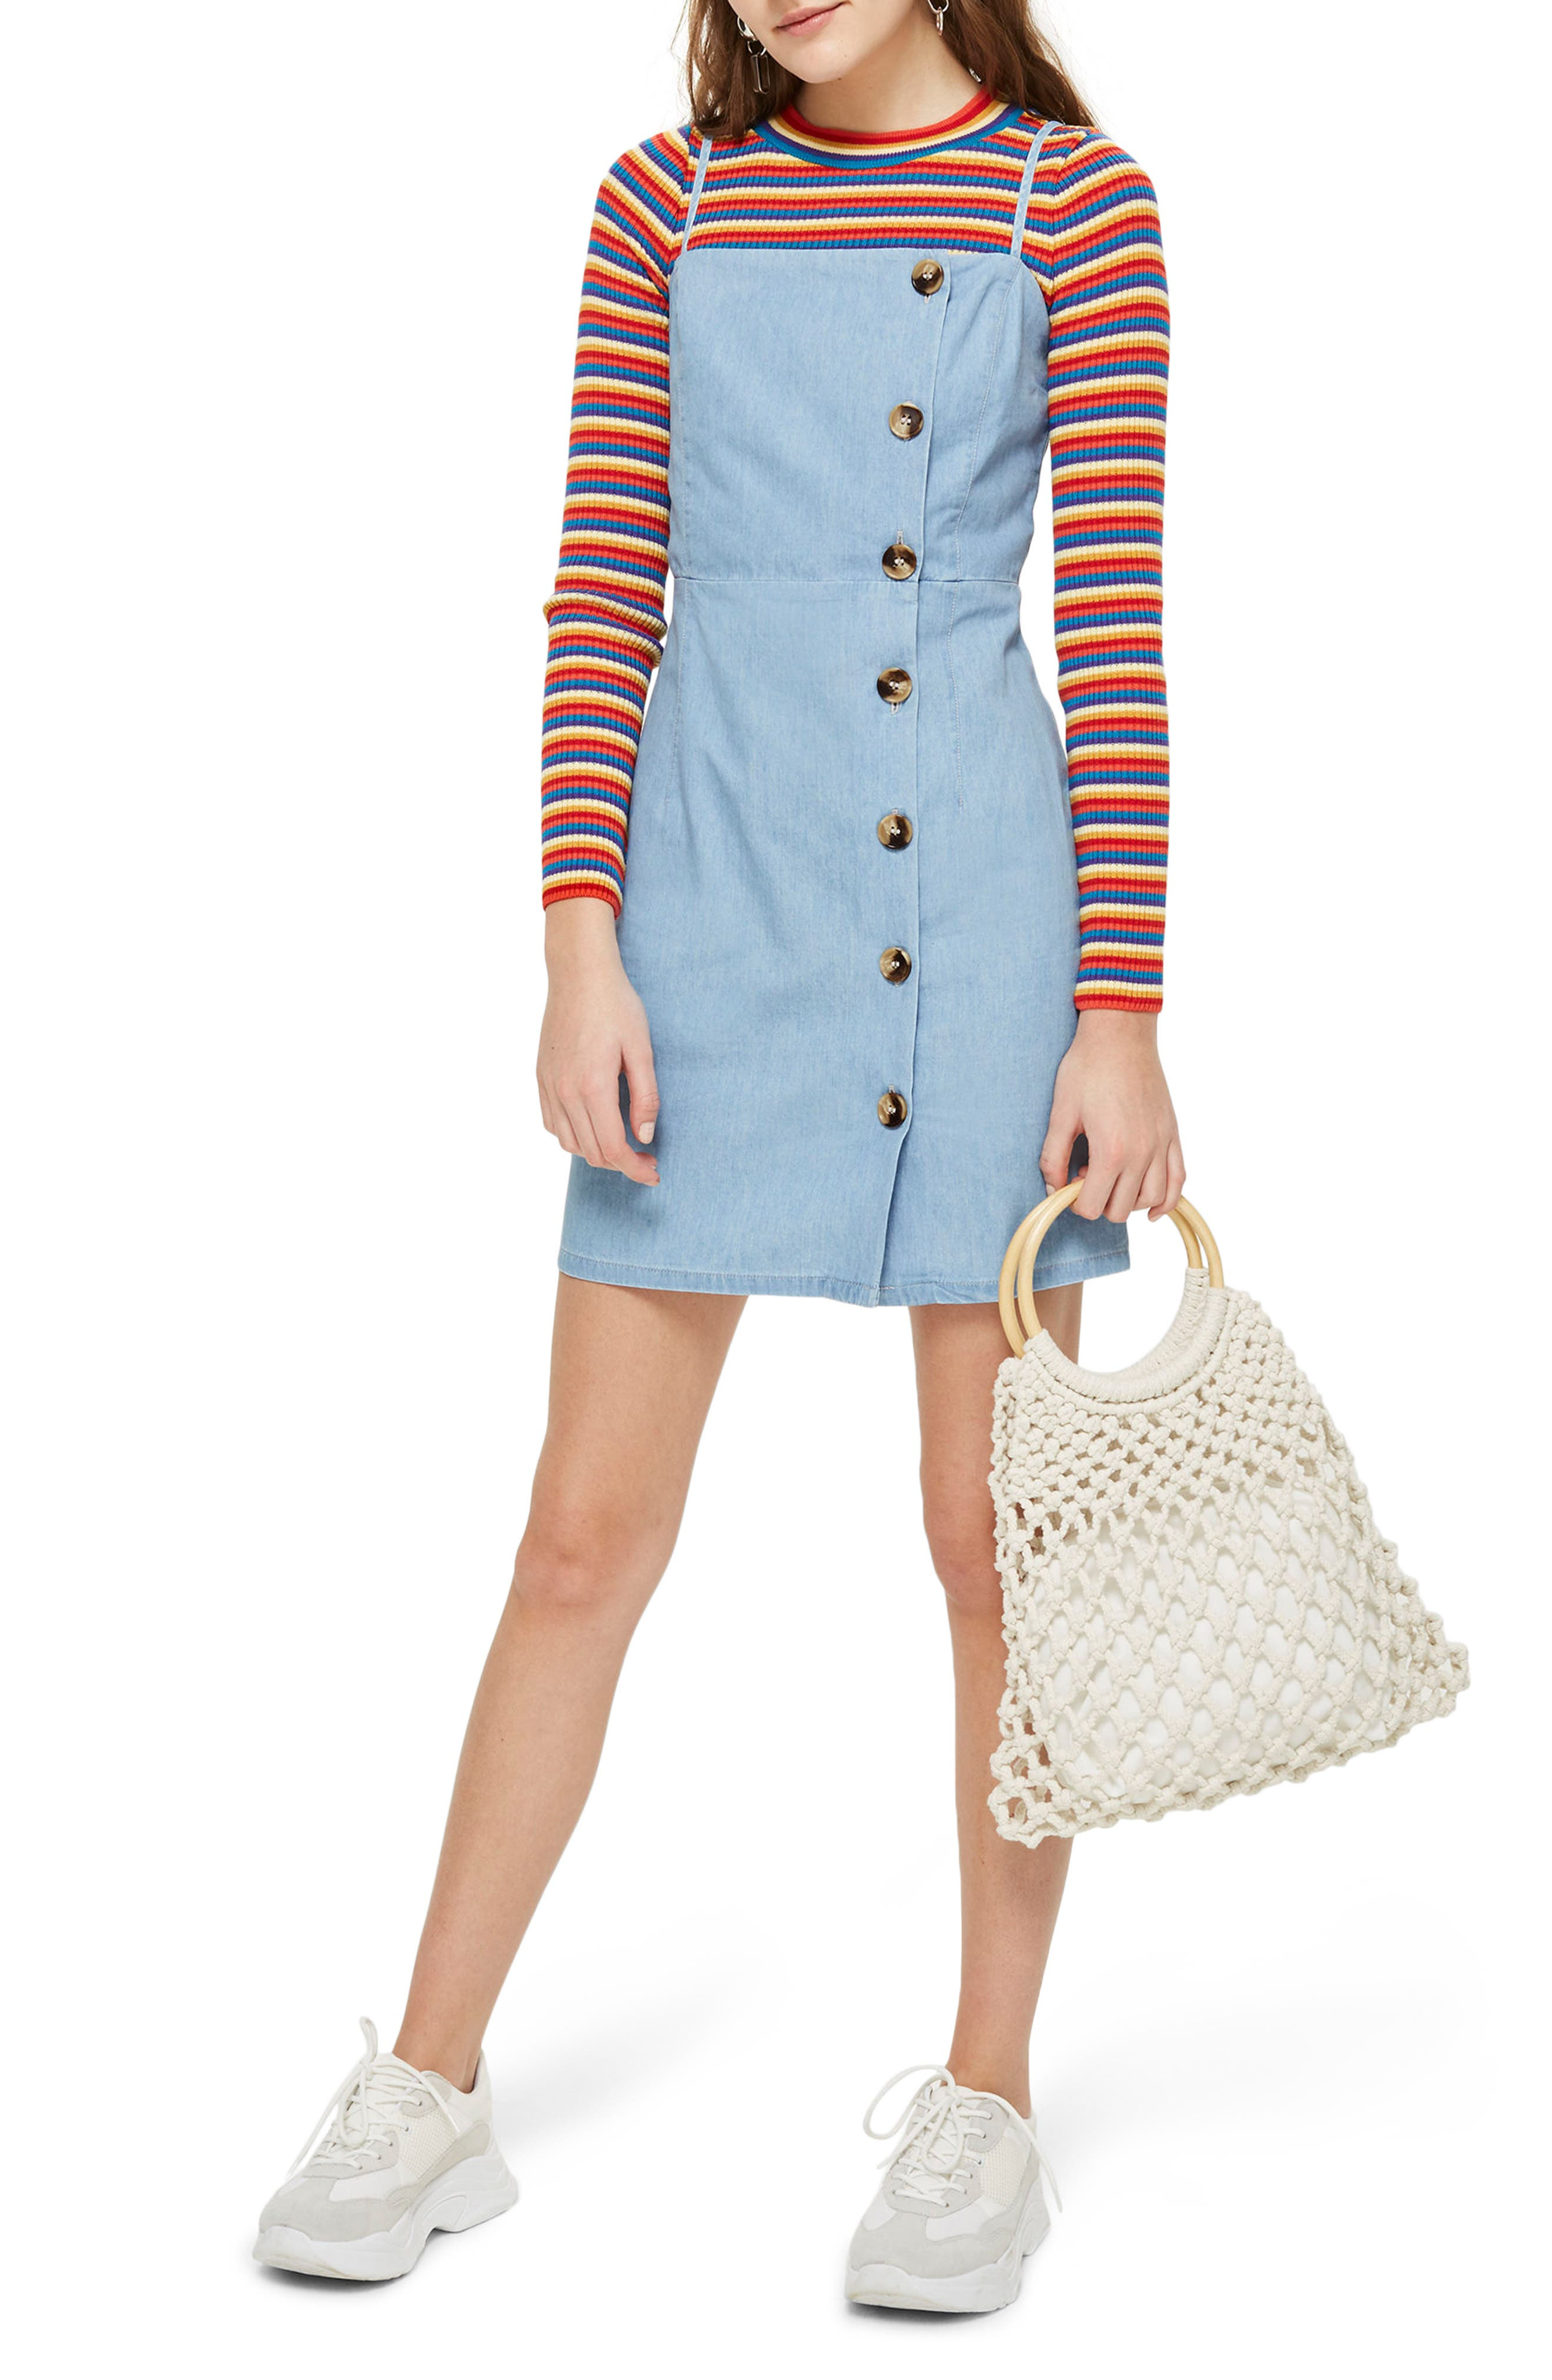 Horn Button Minidress,                             Main thumbnail 1, color,                             Mid Denim